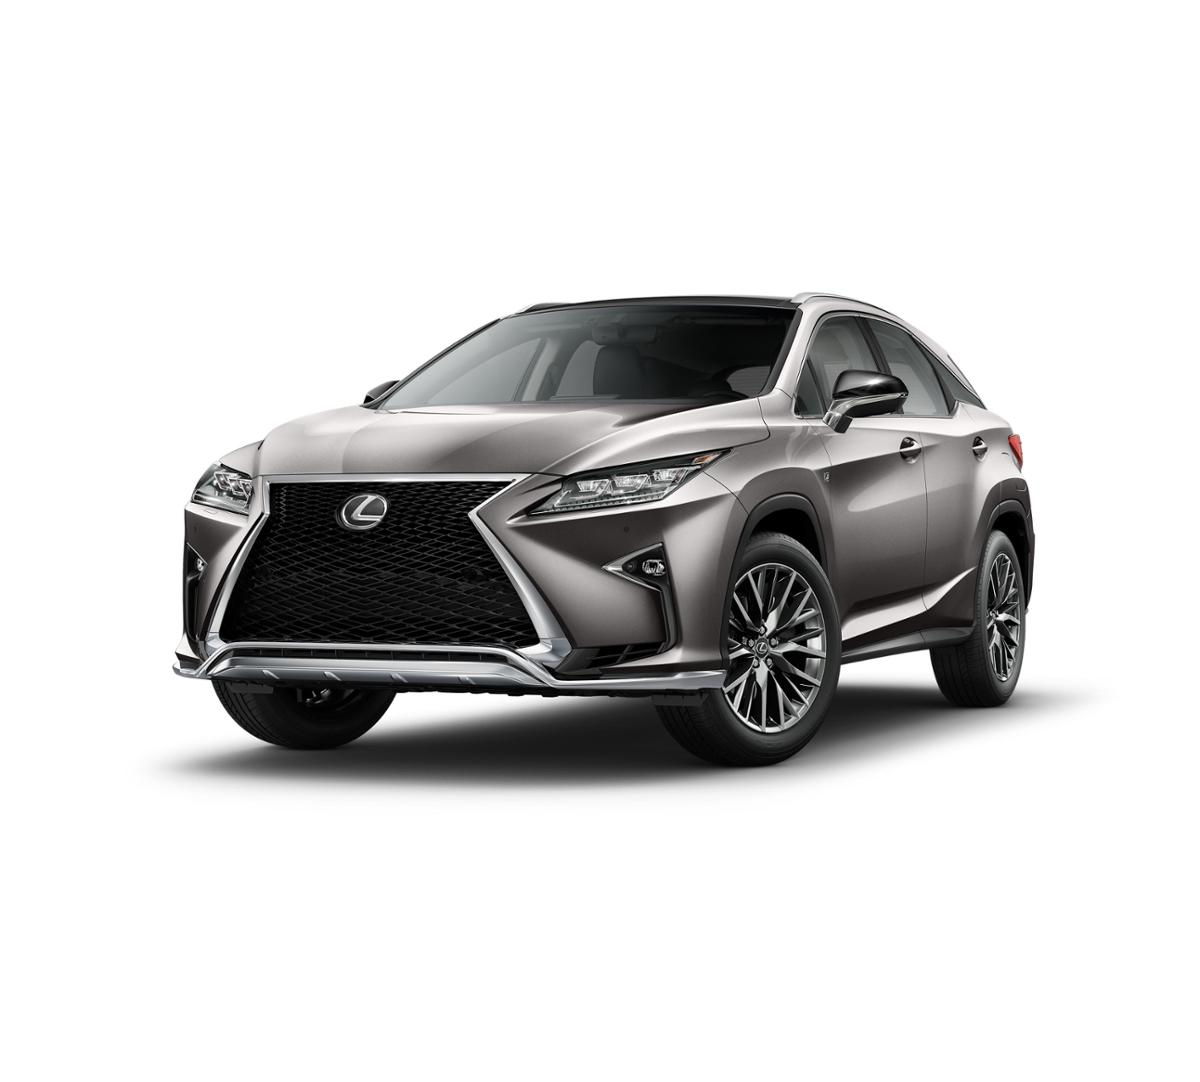 2018 Lexus Rx 350 Englewood Nj Lexus Of Englewood Jc165841